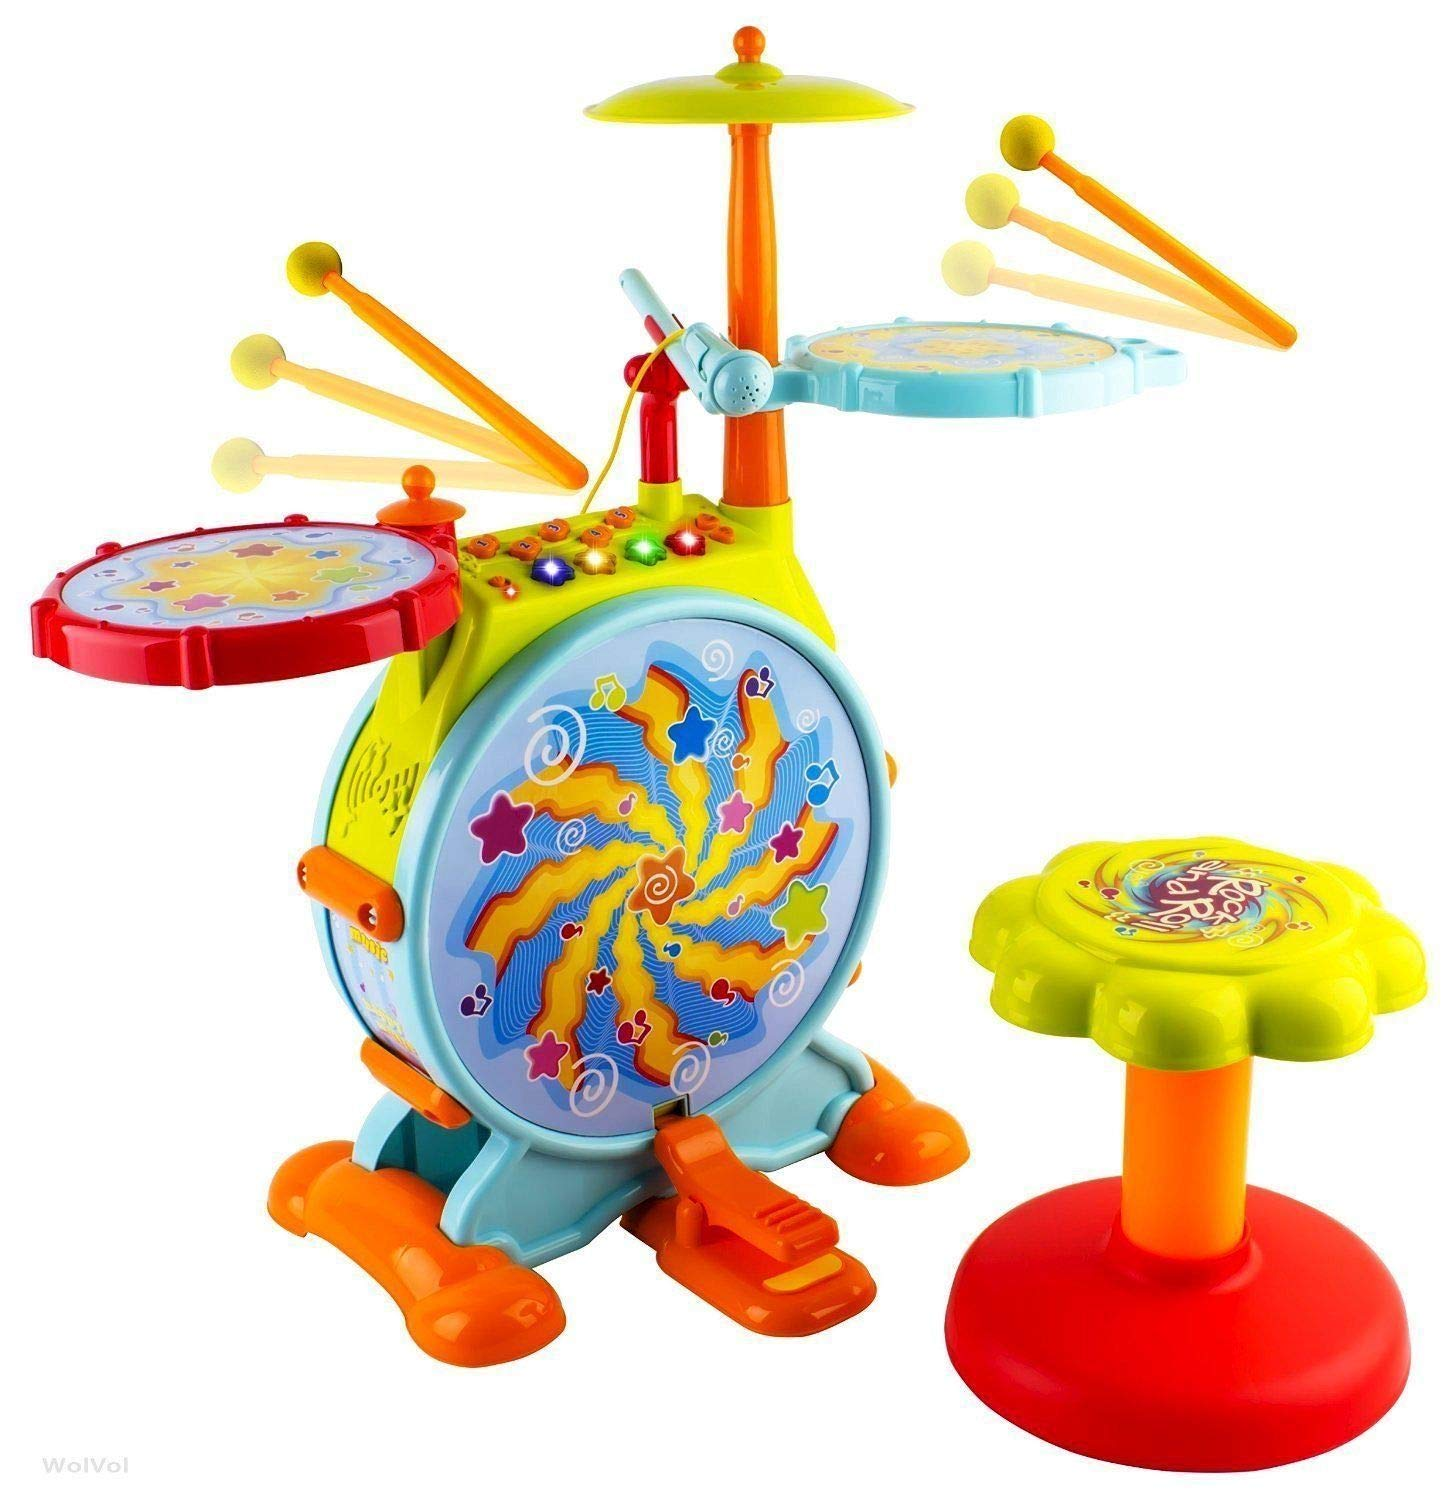 Play Baby Musical Big Toy Kids Drum Set with Adjustable Mic and Seat - Many Functions and Activities for Hours of Play - Pretend to Be A Real Drummer with Drumsticks, Pedals, and Bass Drum by Play Baby